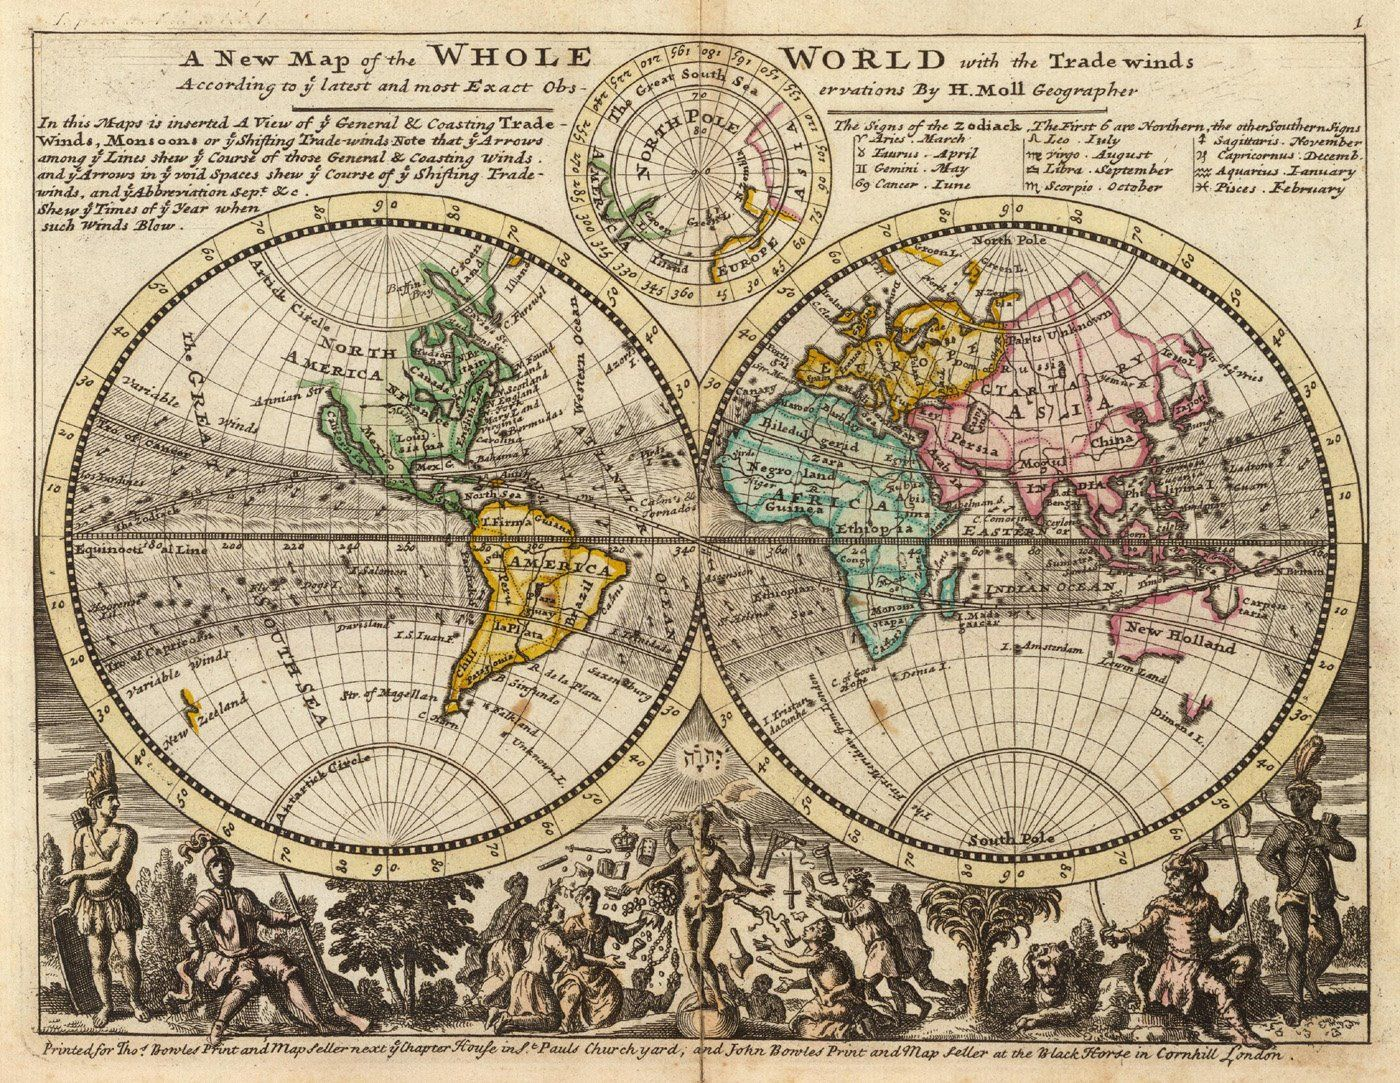 18th Century World Map With The Trade Winds From The German Or